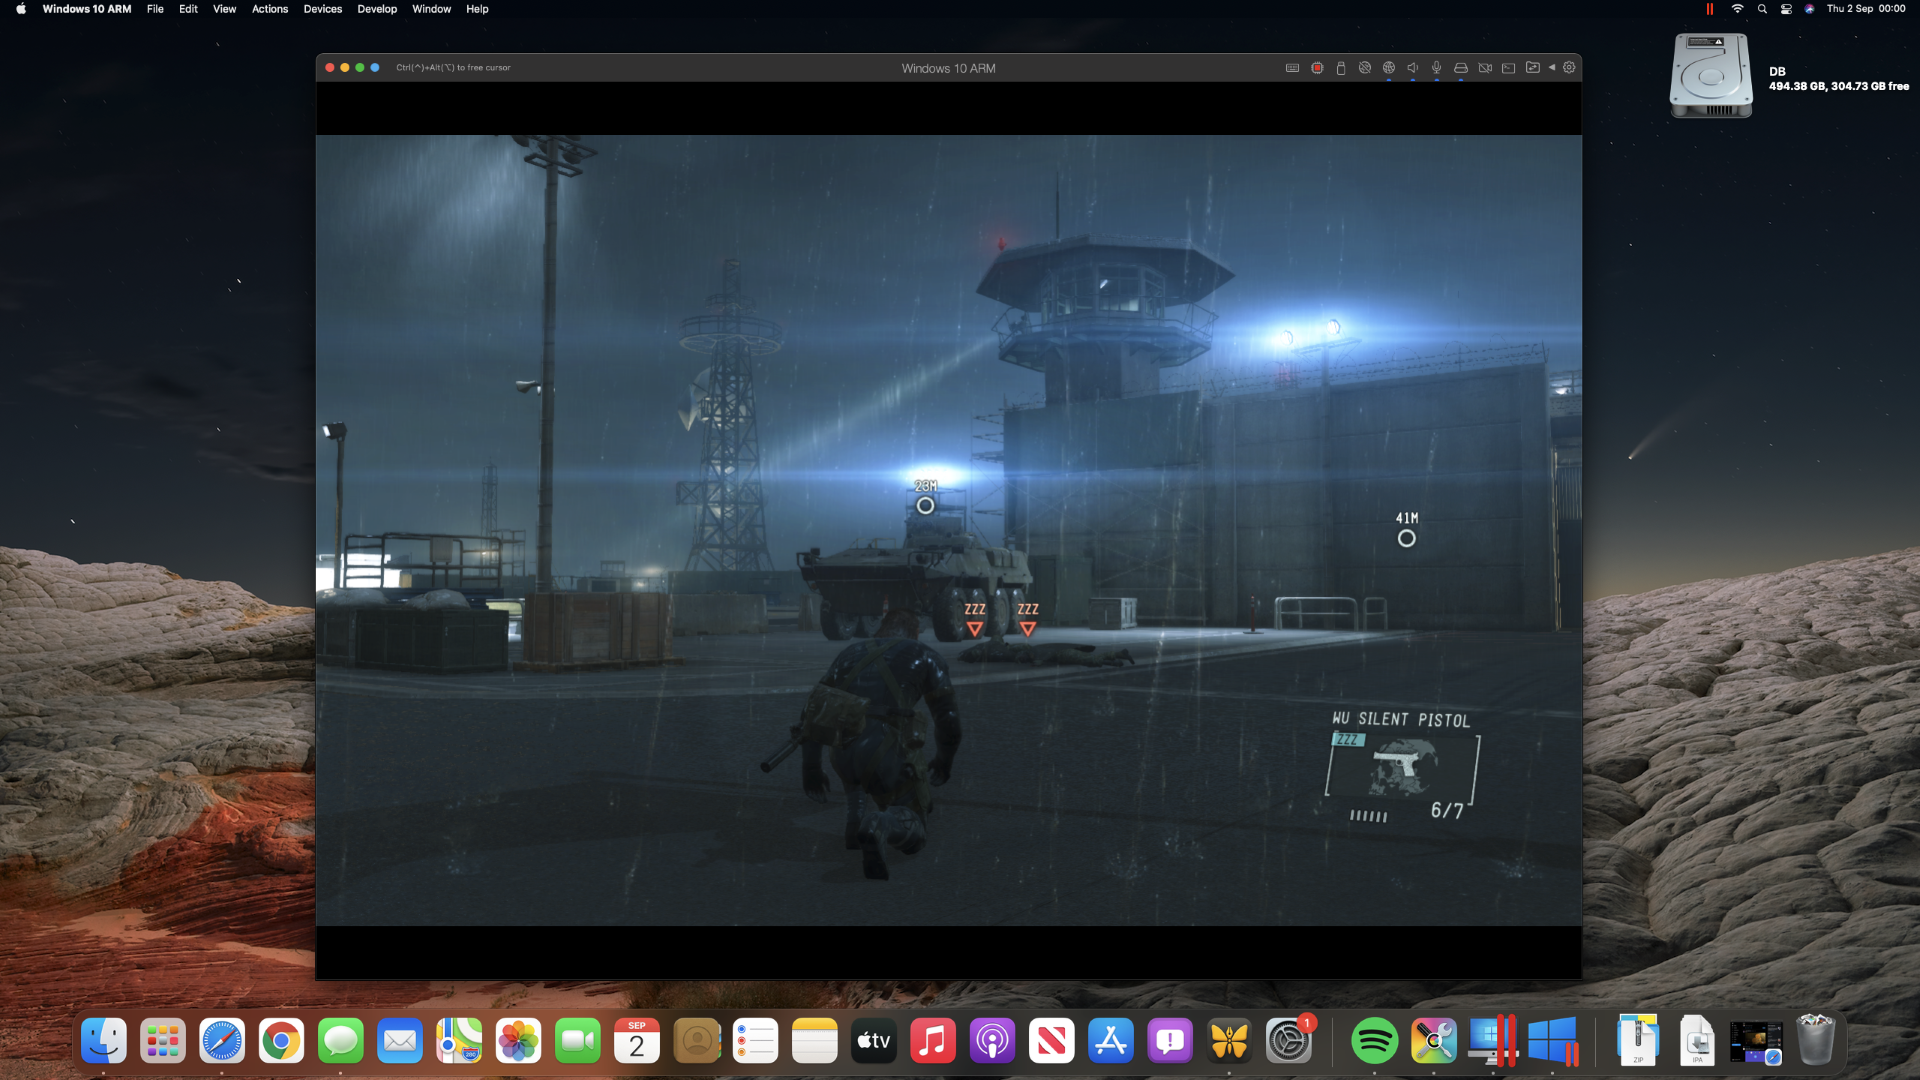 Playing Ground Zeroes on a M1 Mac mini